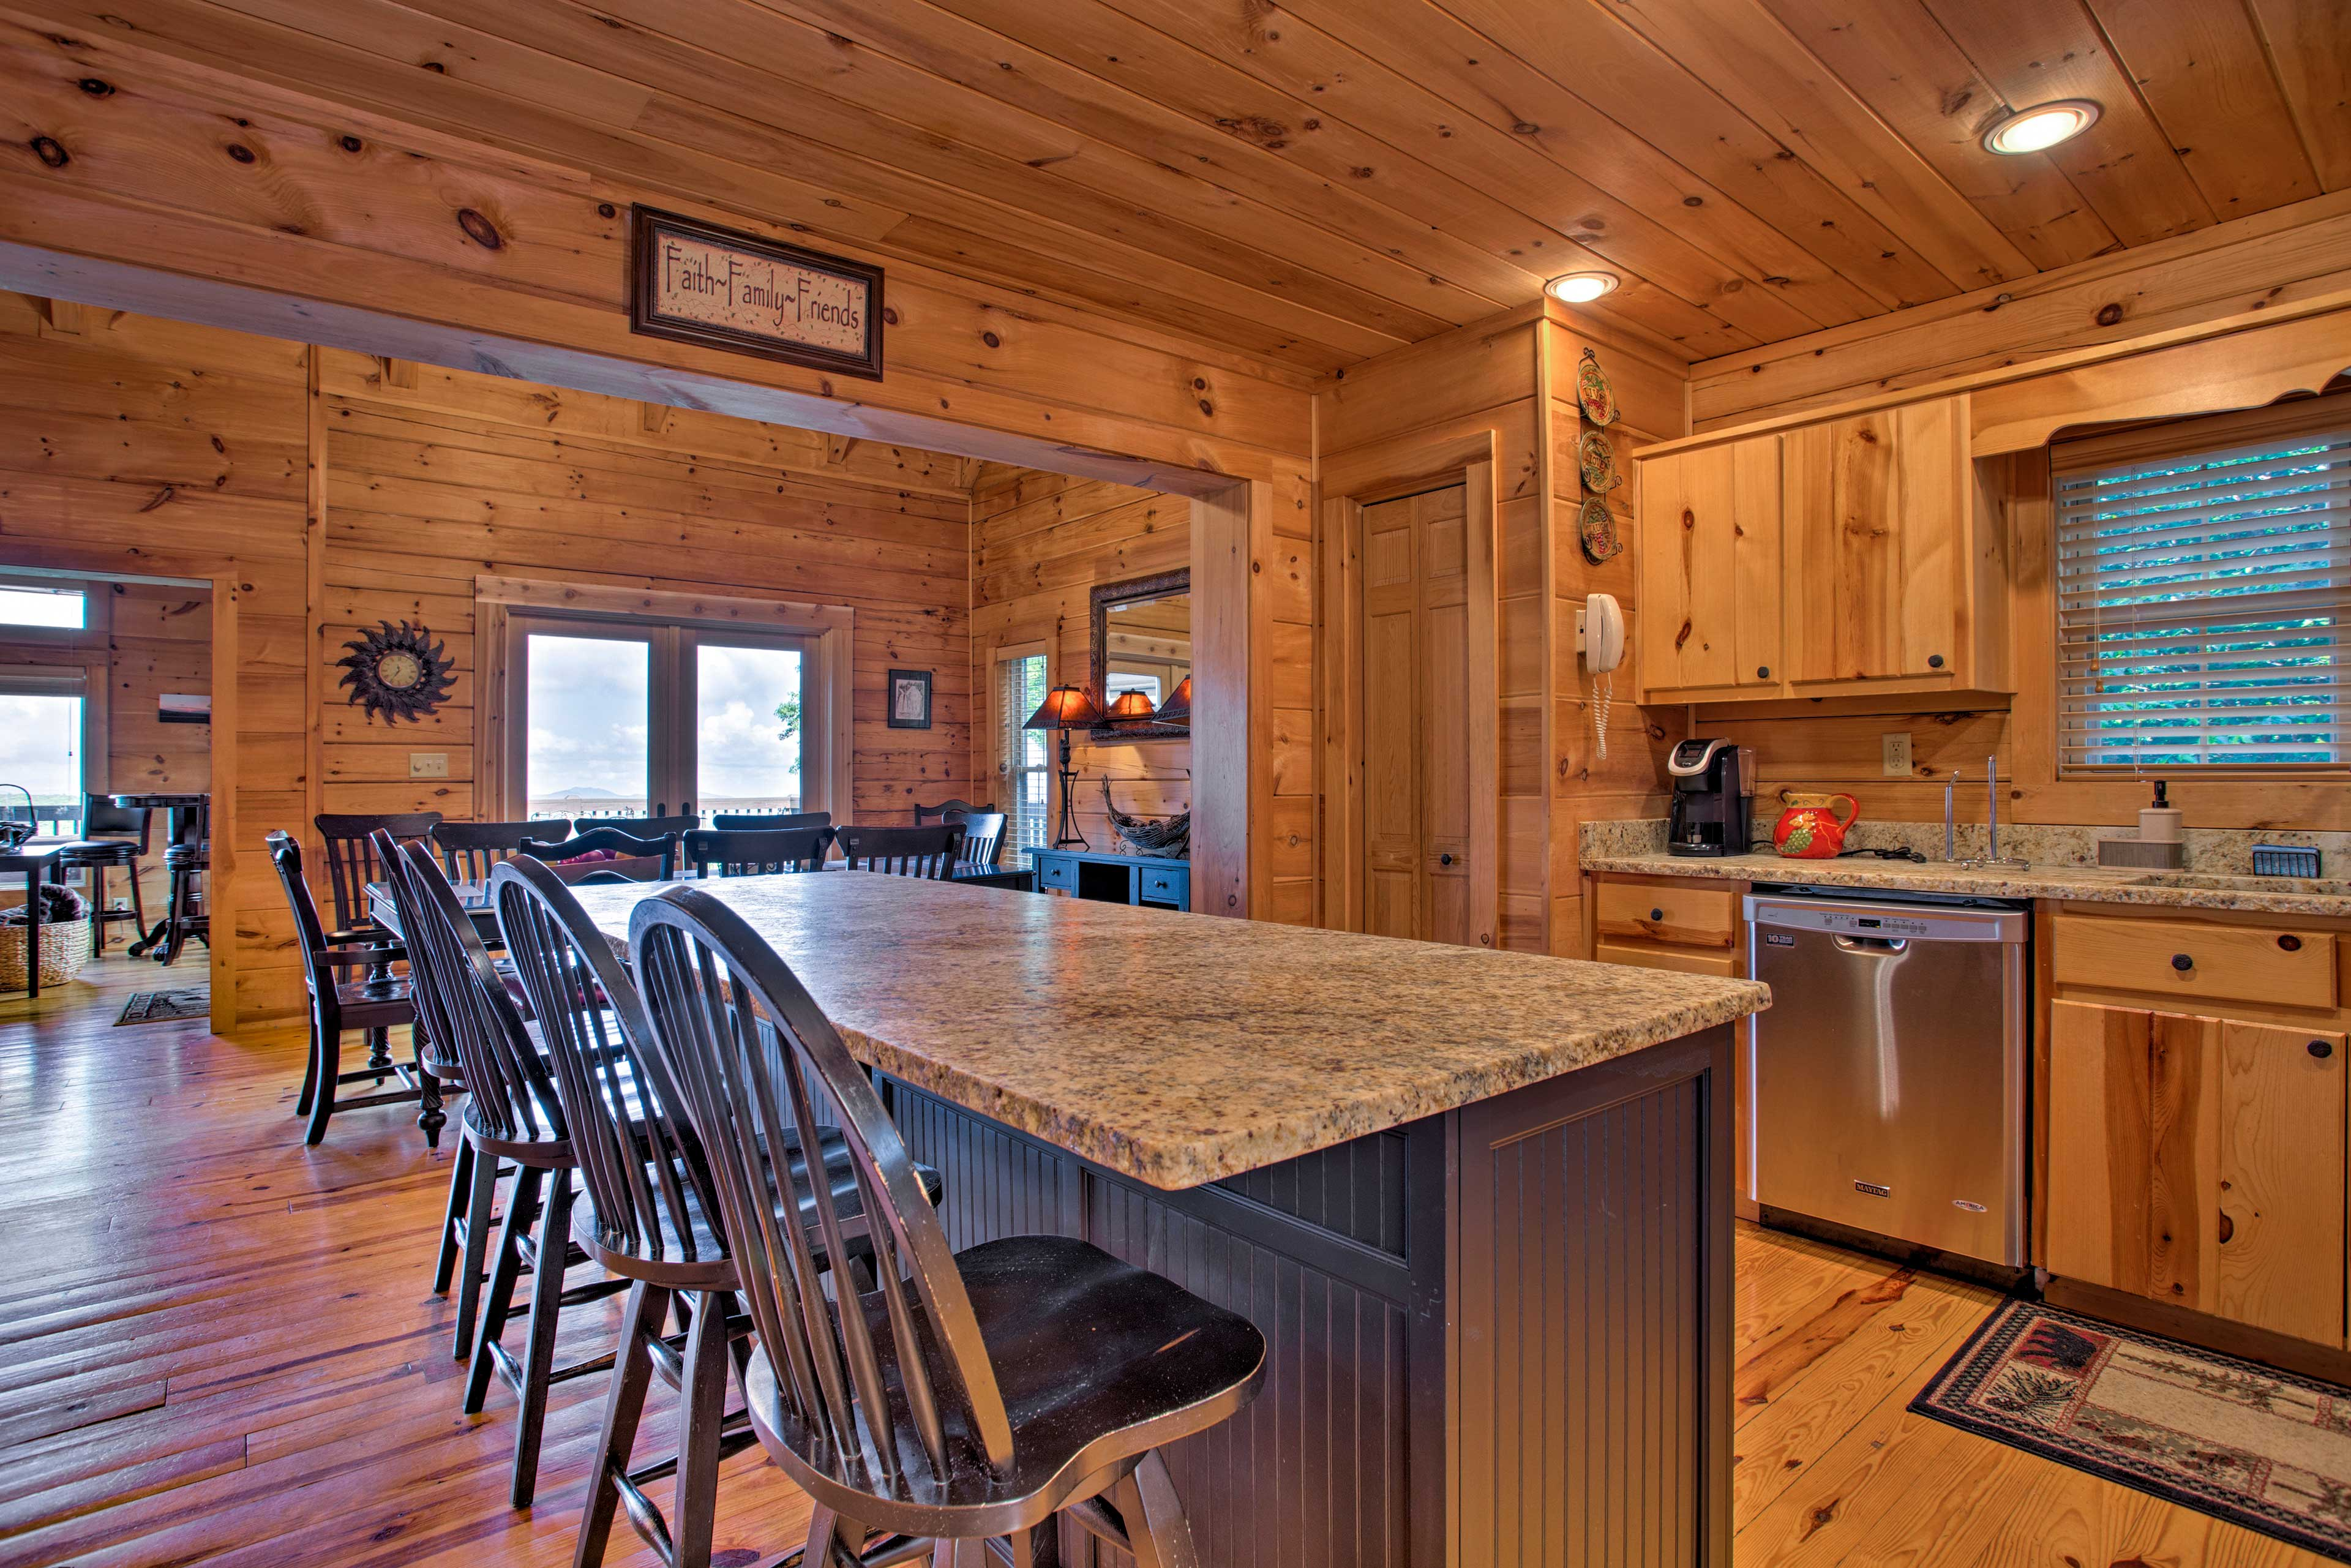 Don't forget the K-Cups! This property has a Keurig for morning convenience.